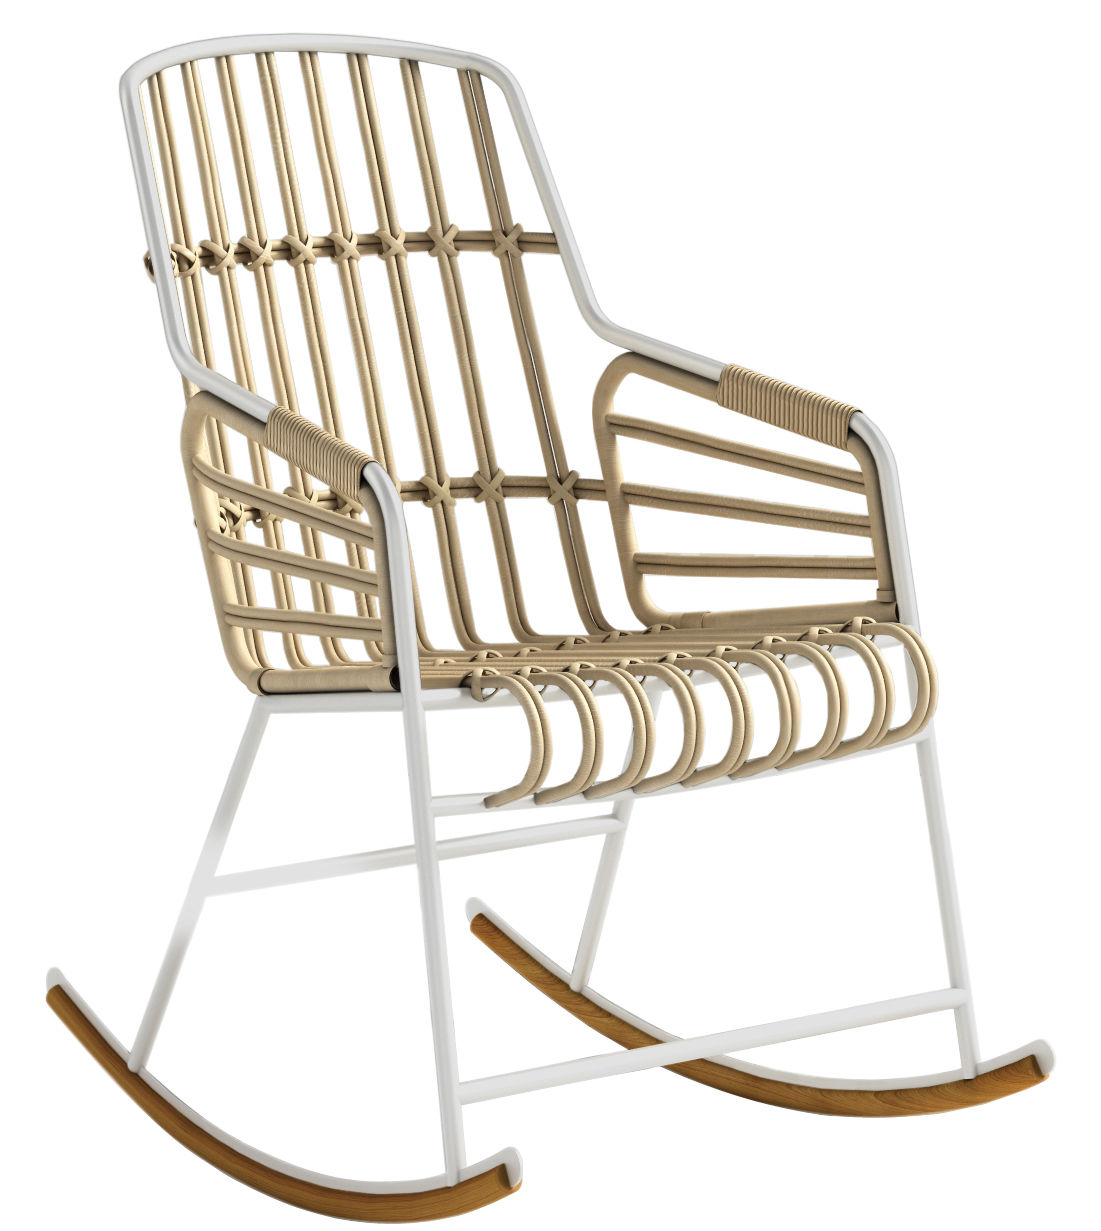 Furniture - Armchairs - Raphia Rocking chair by Casamania - White - Cane, Varnished metal